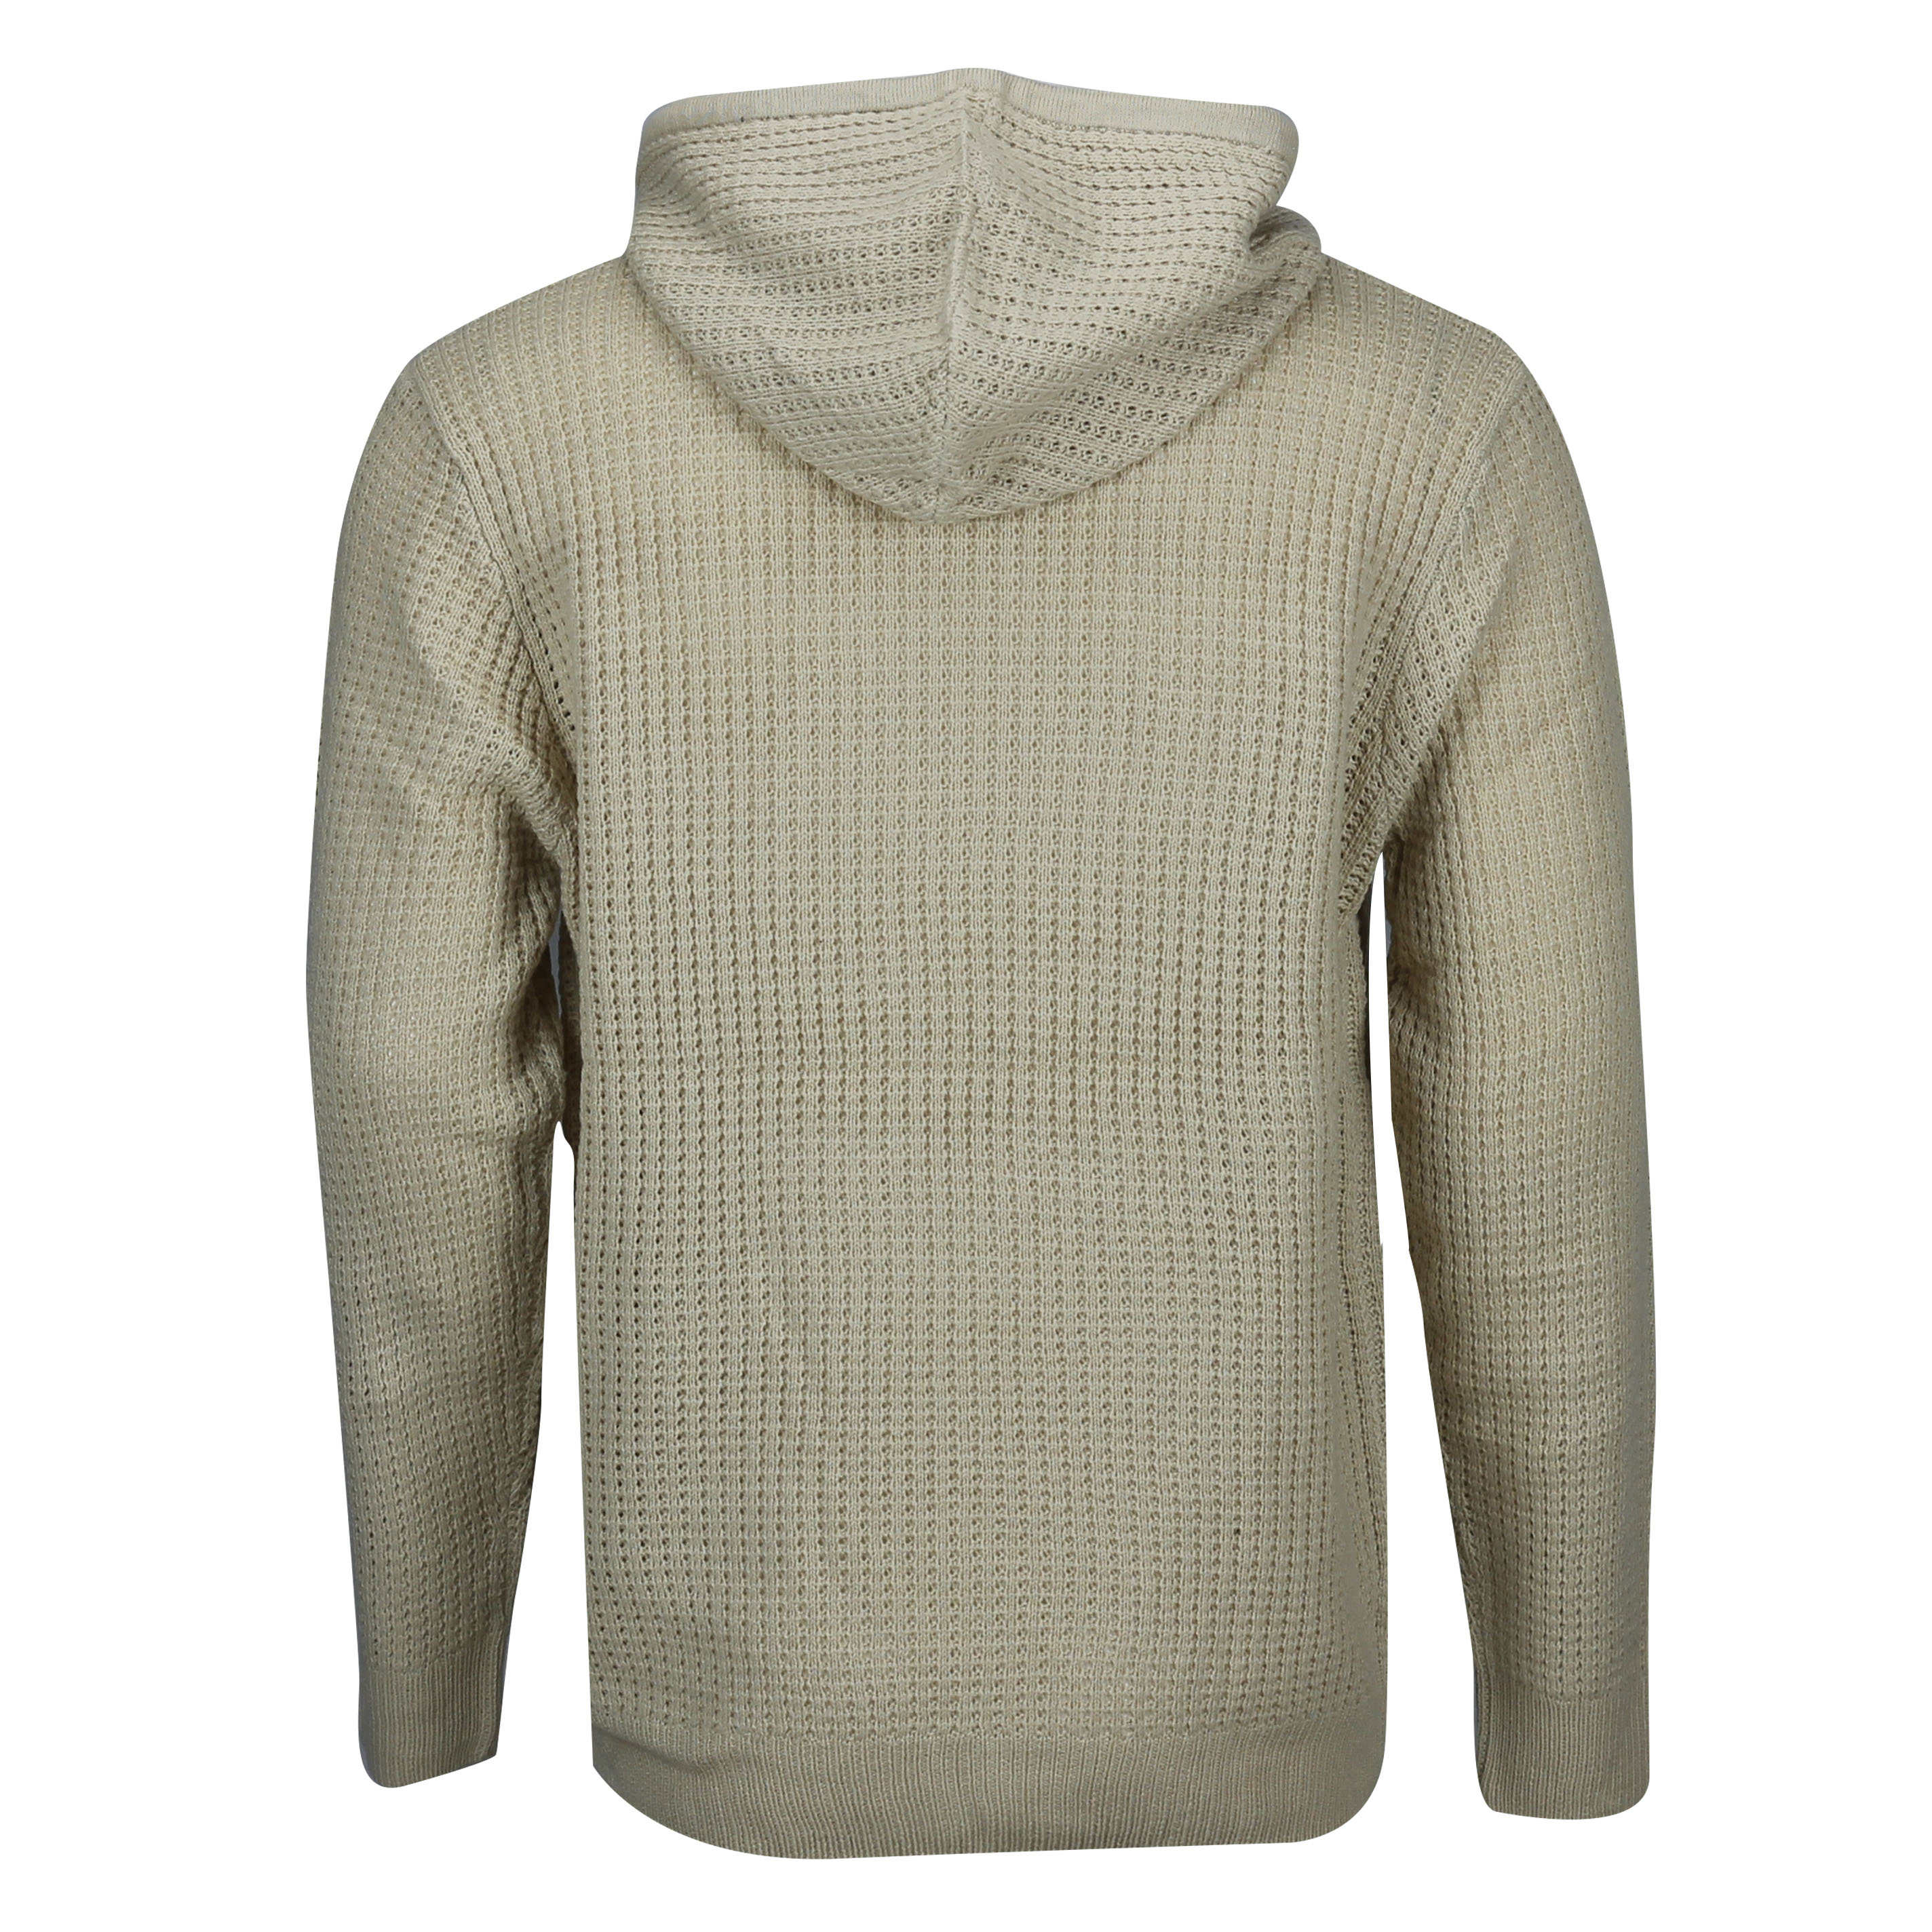 New-Mens-Soul-Star-Retro-Cable-Knit-Hood-Jumper-Long-Line-Hoody-Sweater-Pullover thumbnail 3